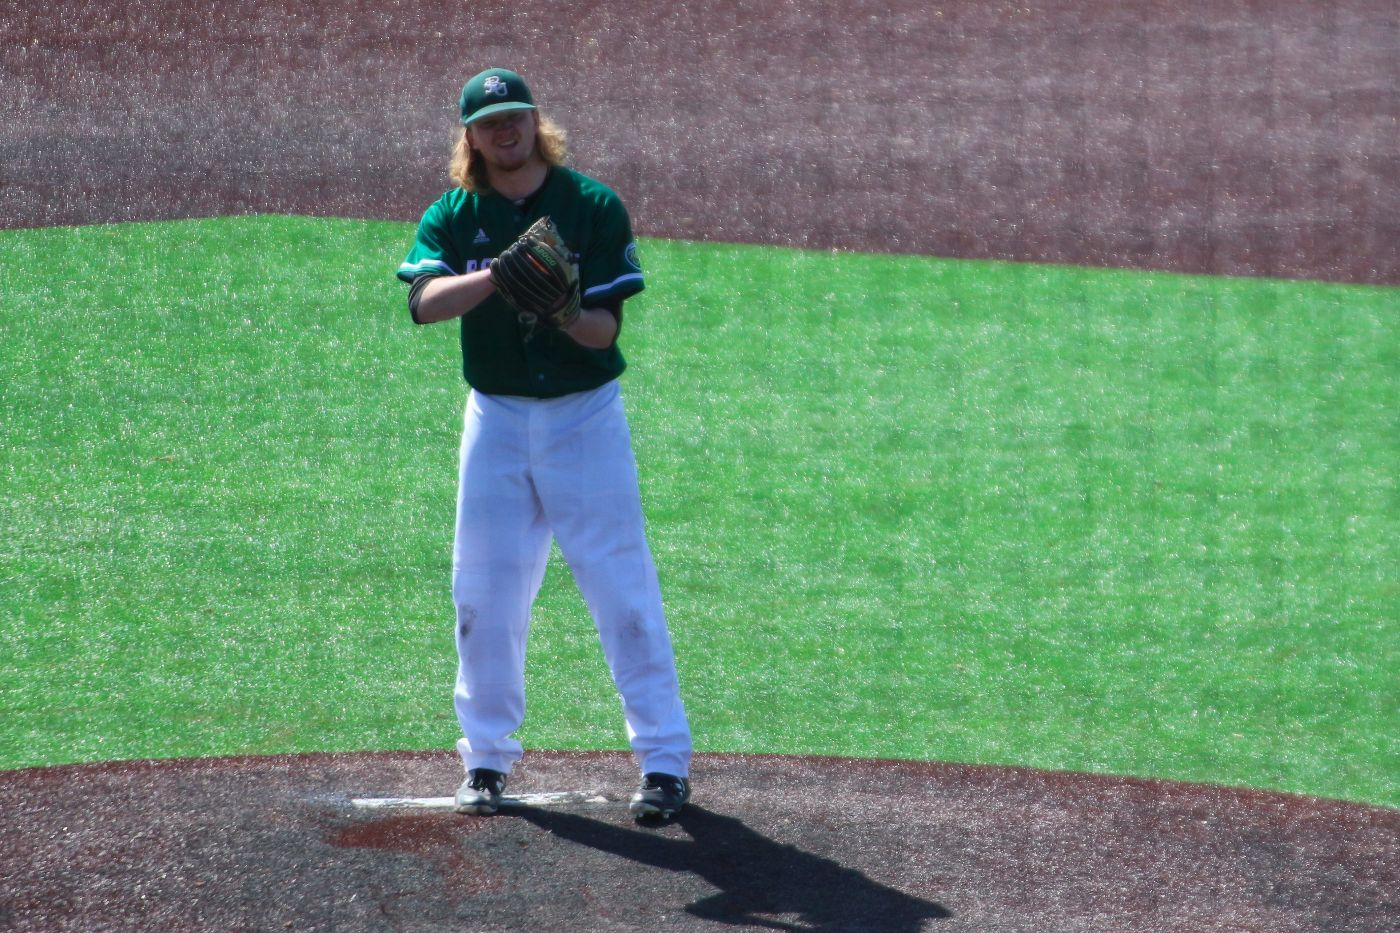 Cougars sweep Sunday doubleheader to win series over Beavers